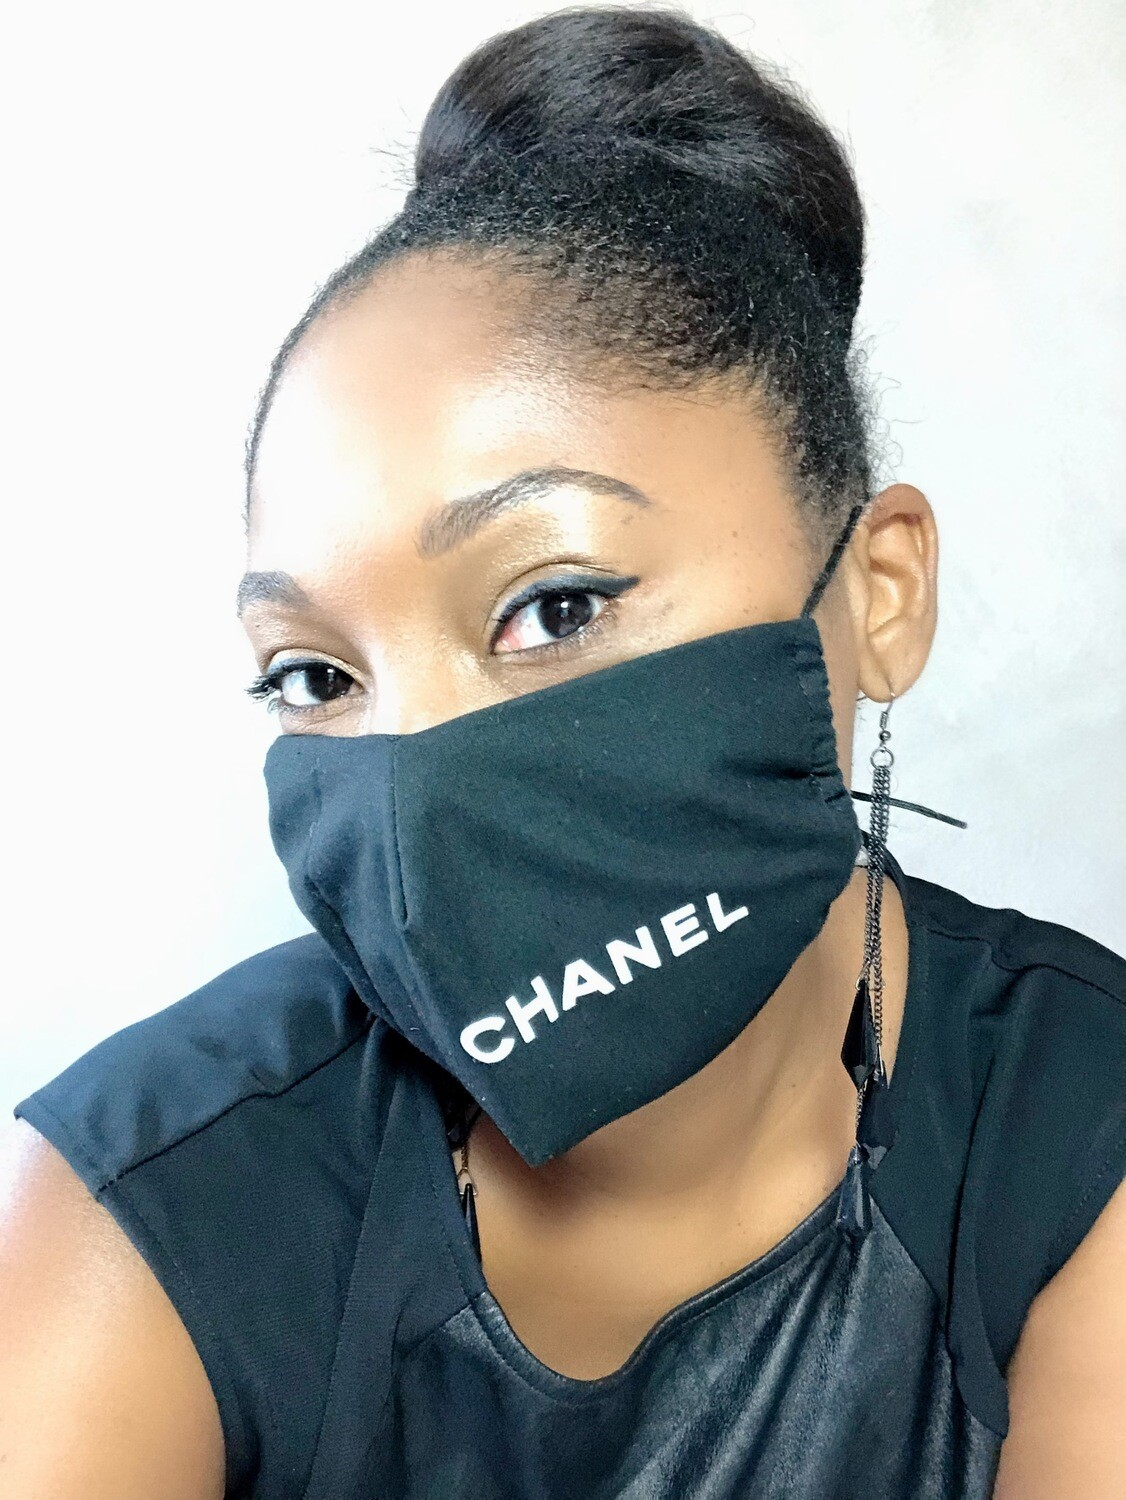 CHANEL face mask